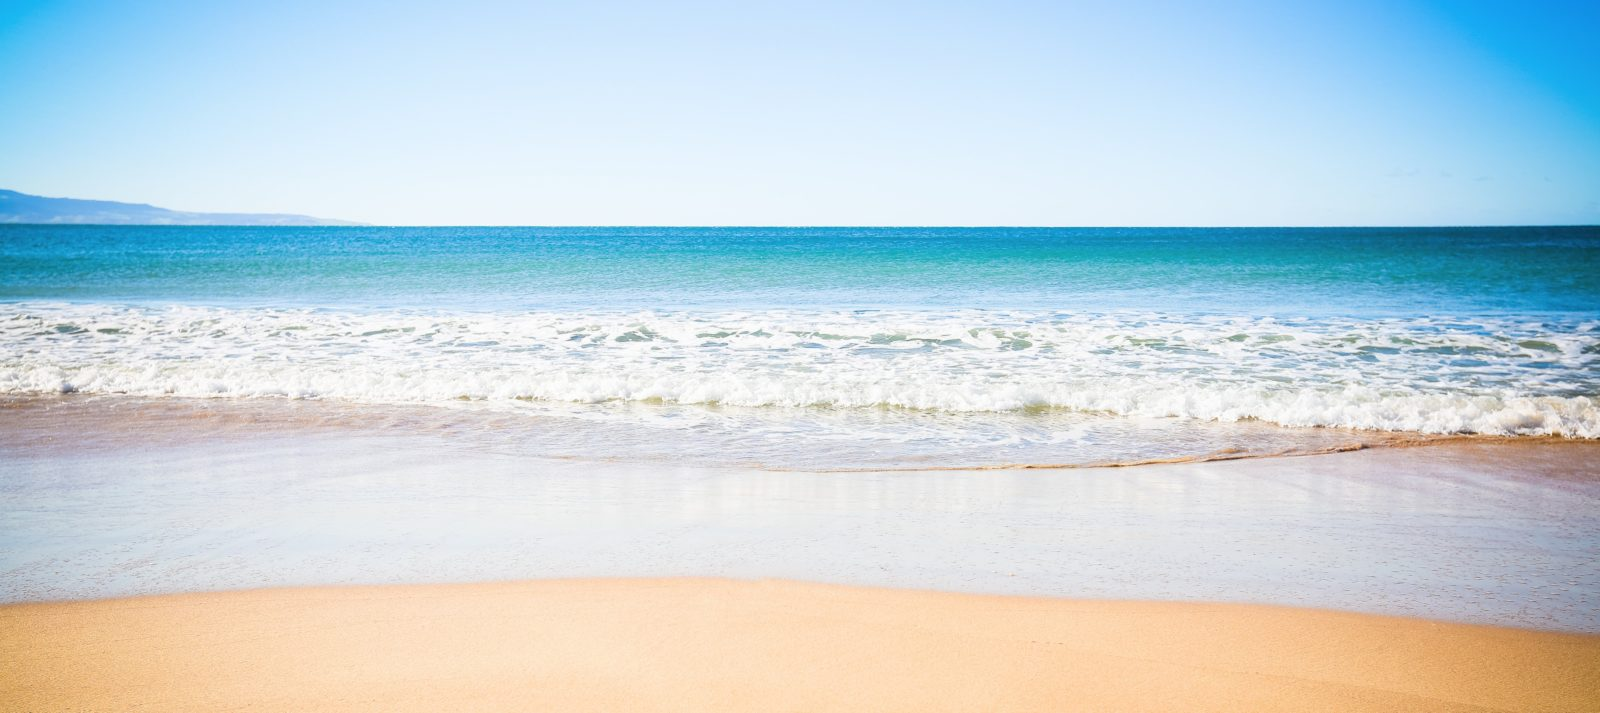 Pristine blue water and golden sand with gentle waves